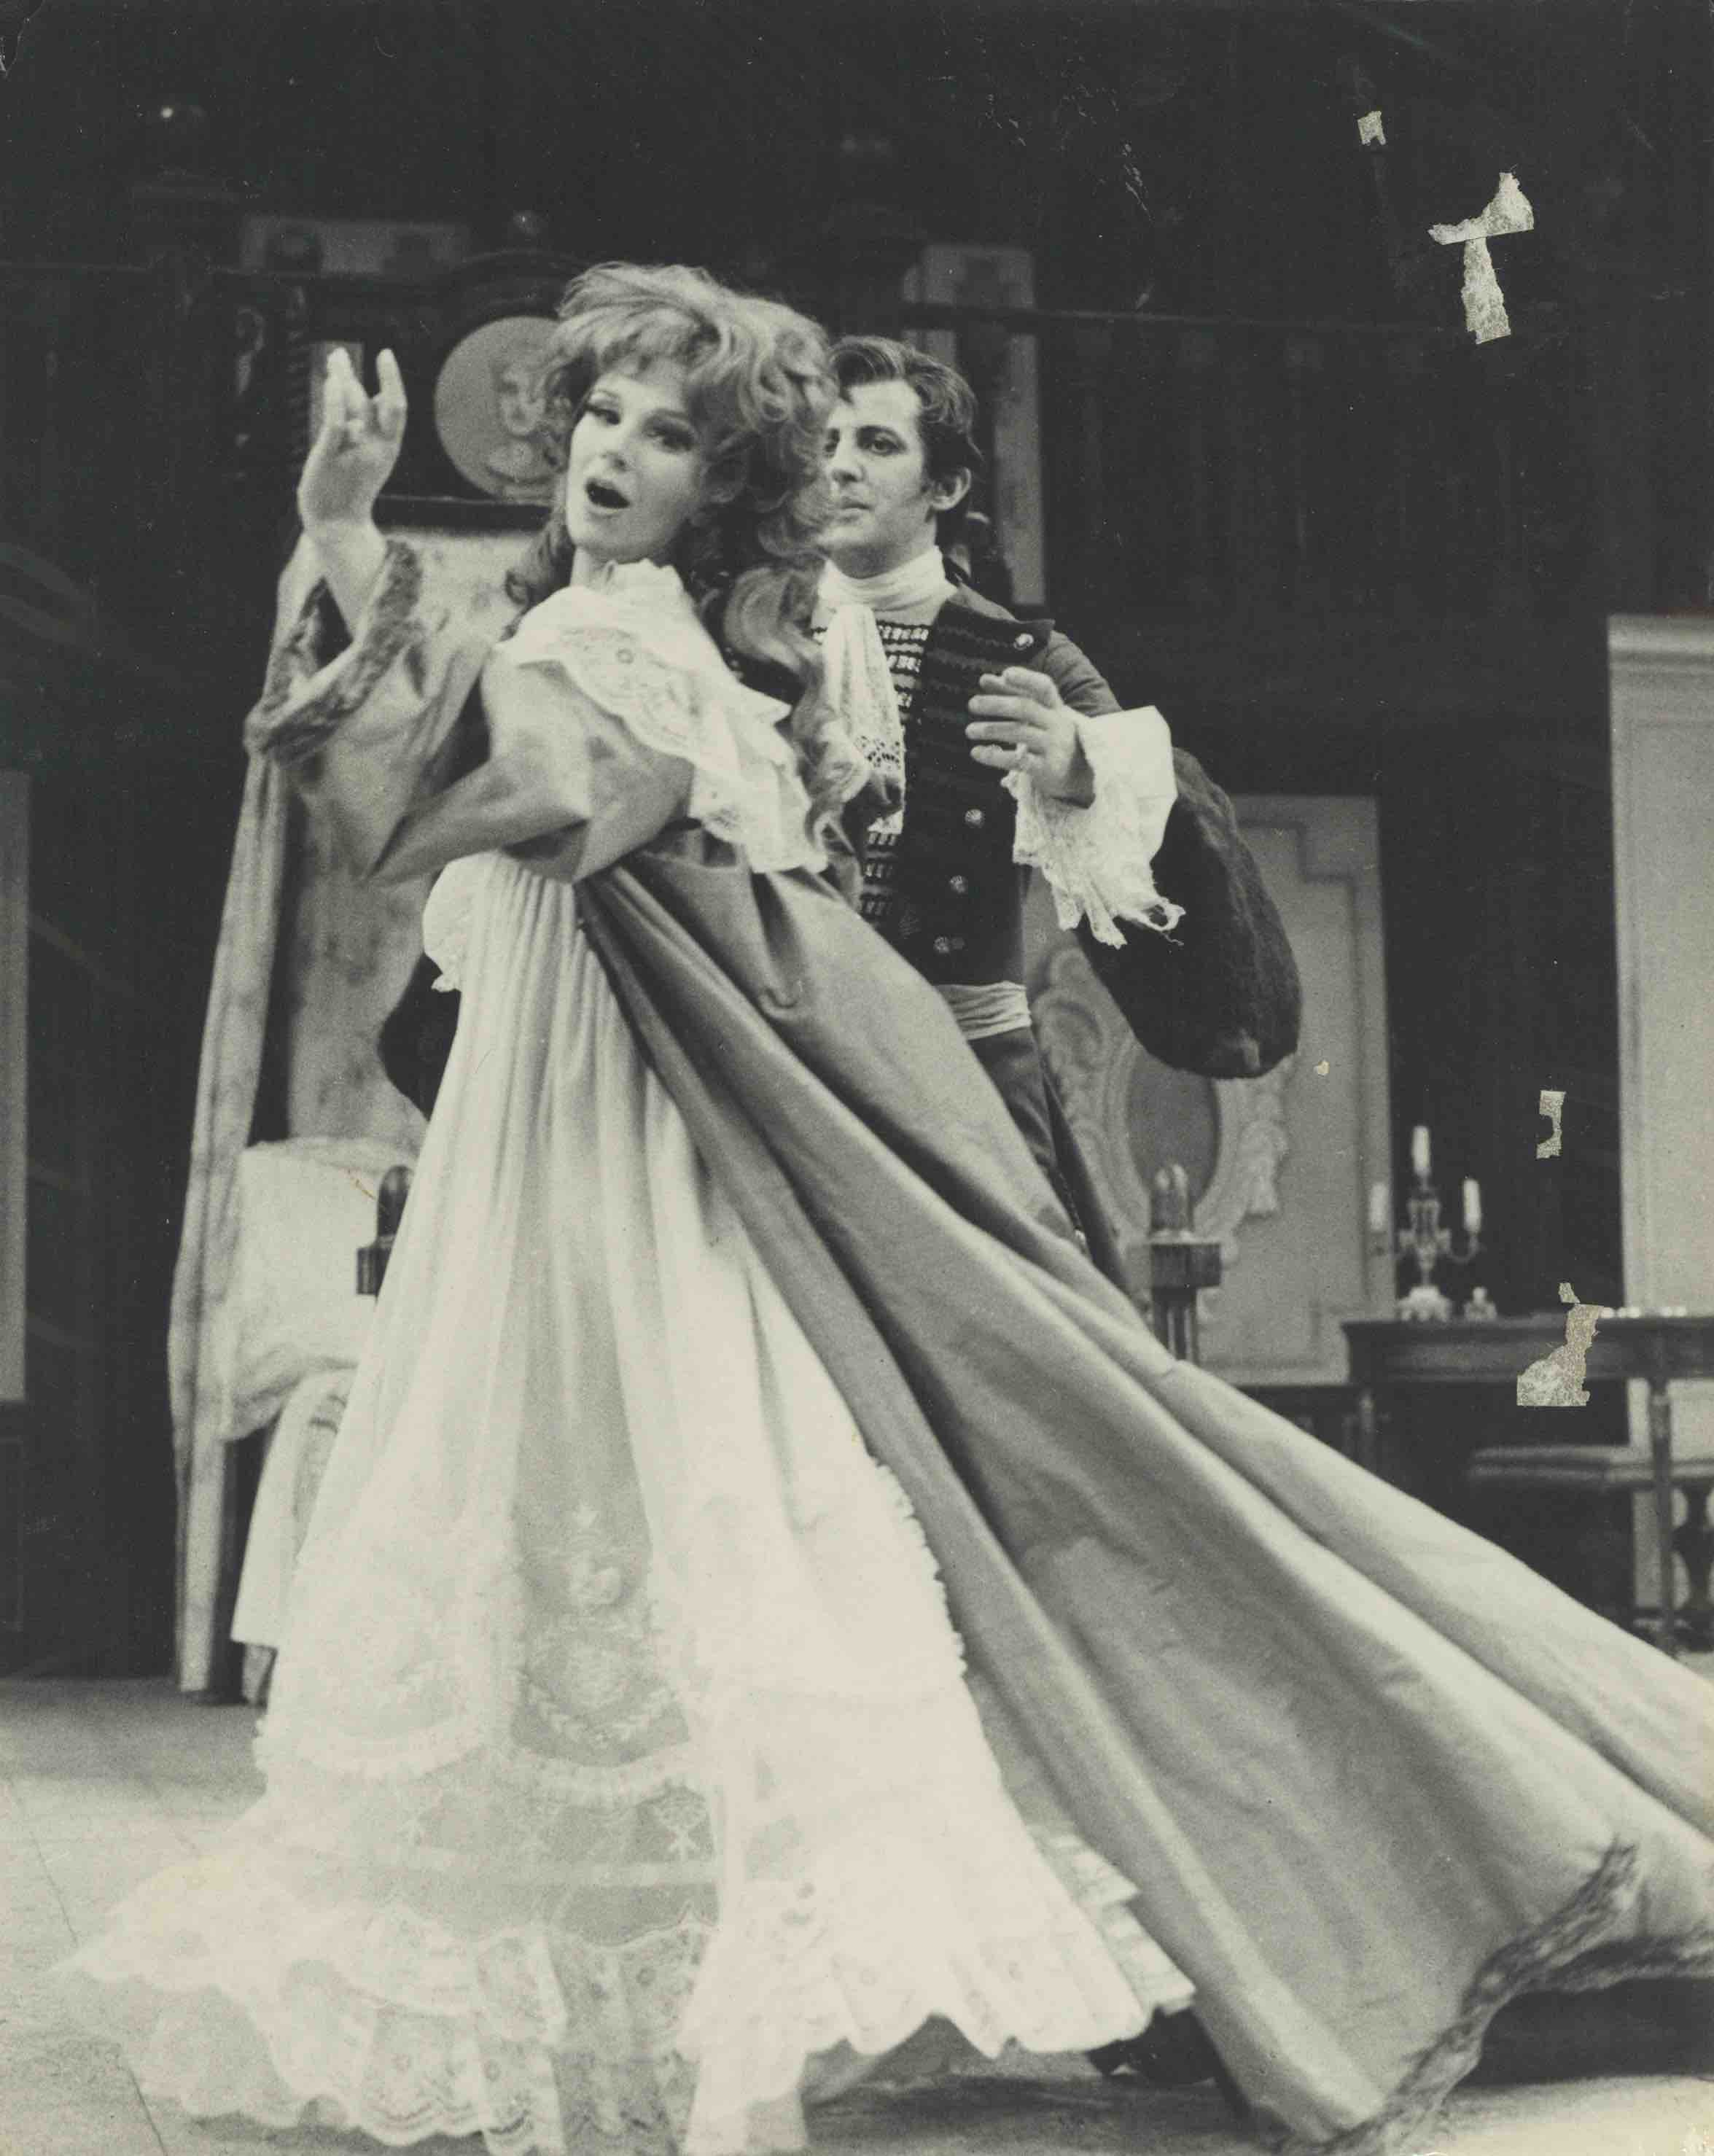 Production photograph - The Beaux Stratagem - Anton Rodgers, Fenella Fielding - Photographer Zoe Dominic - 1967 - WSRO - Dimensions unknown - B